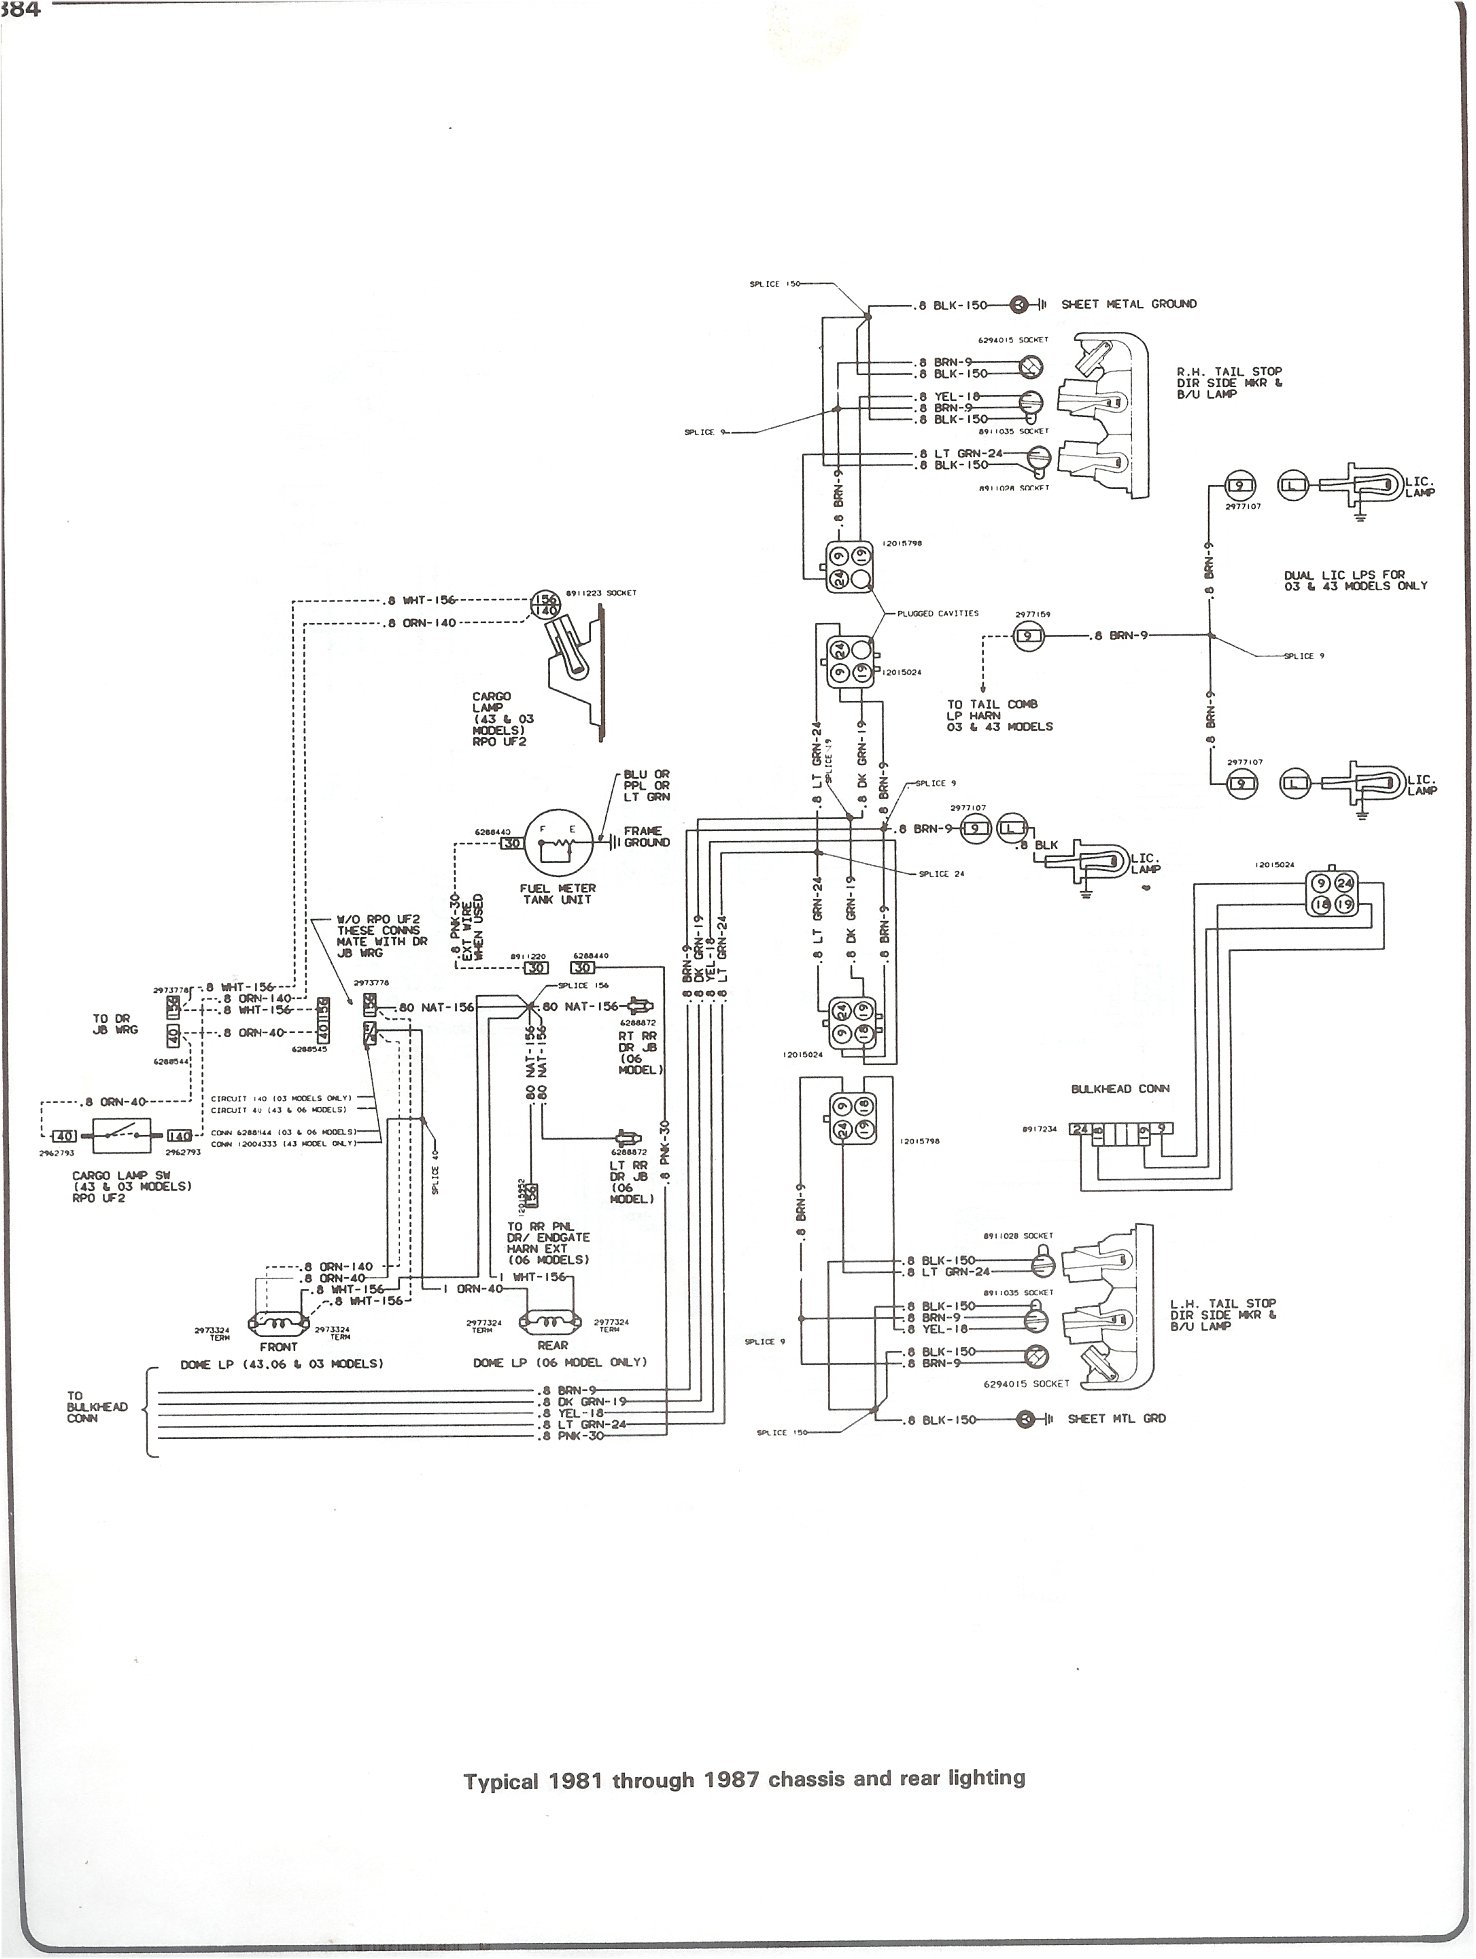 73 K5 Blazer Wiring Diagram The Portal And Forum Of 1995 Chevy S10 Starter 1975 Gmc Todays Rh 8 10 1813weddingbarn Com Chevrolet 1988